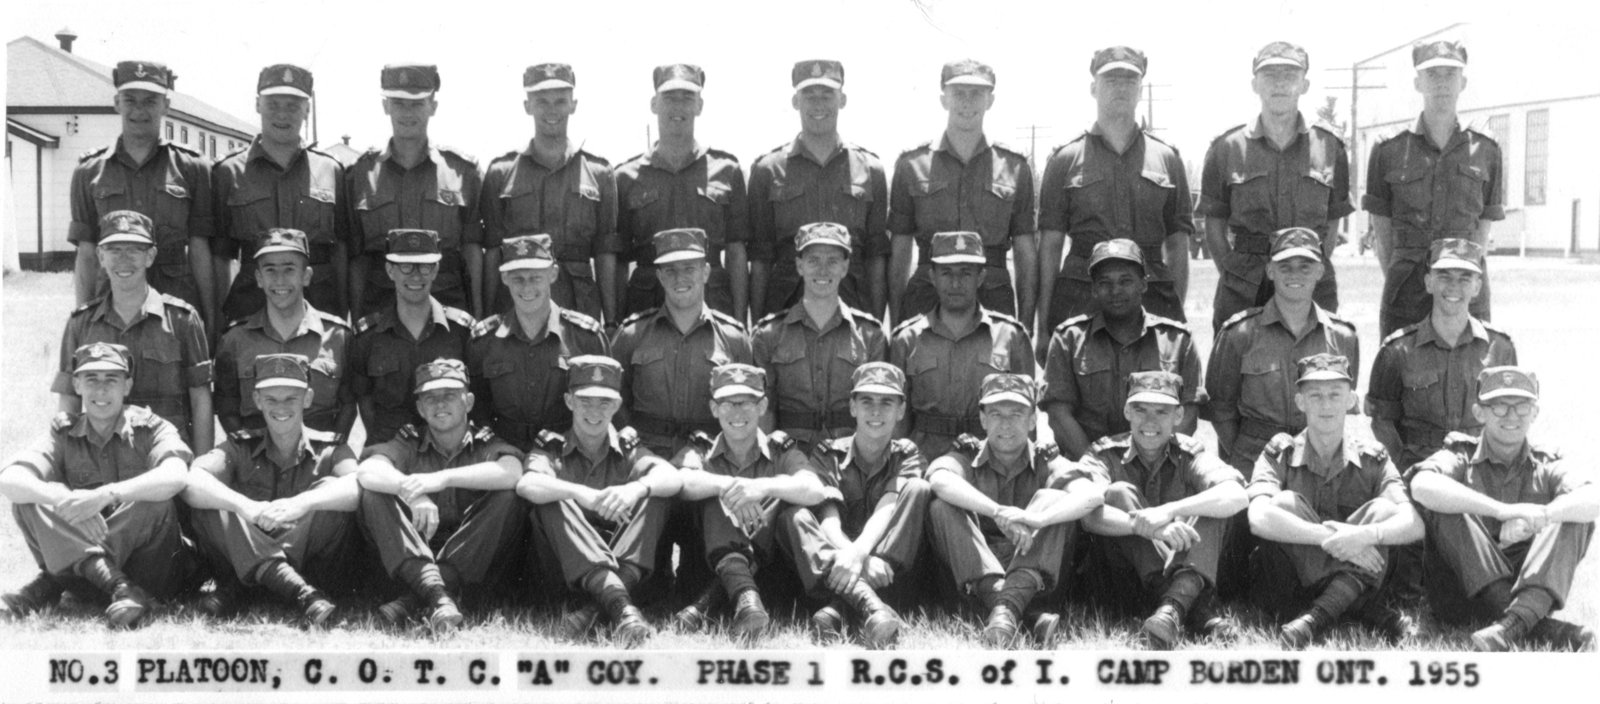 Canadian Officers' Training Corps no. 3 platoon at Canadian Forces Base Borden